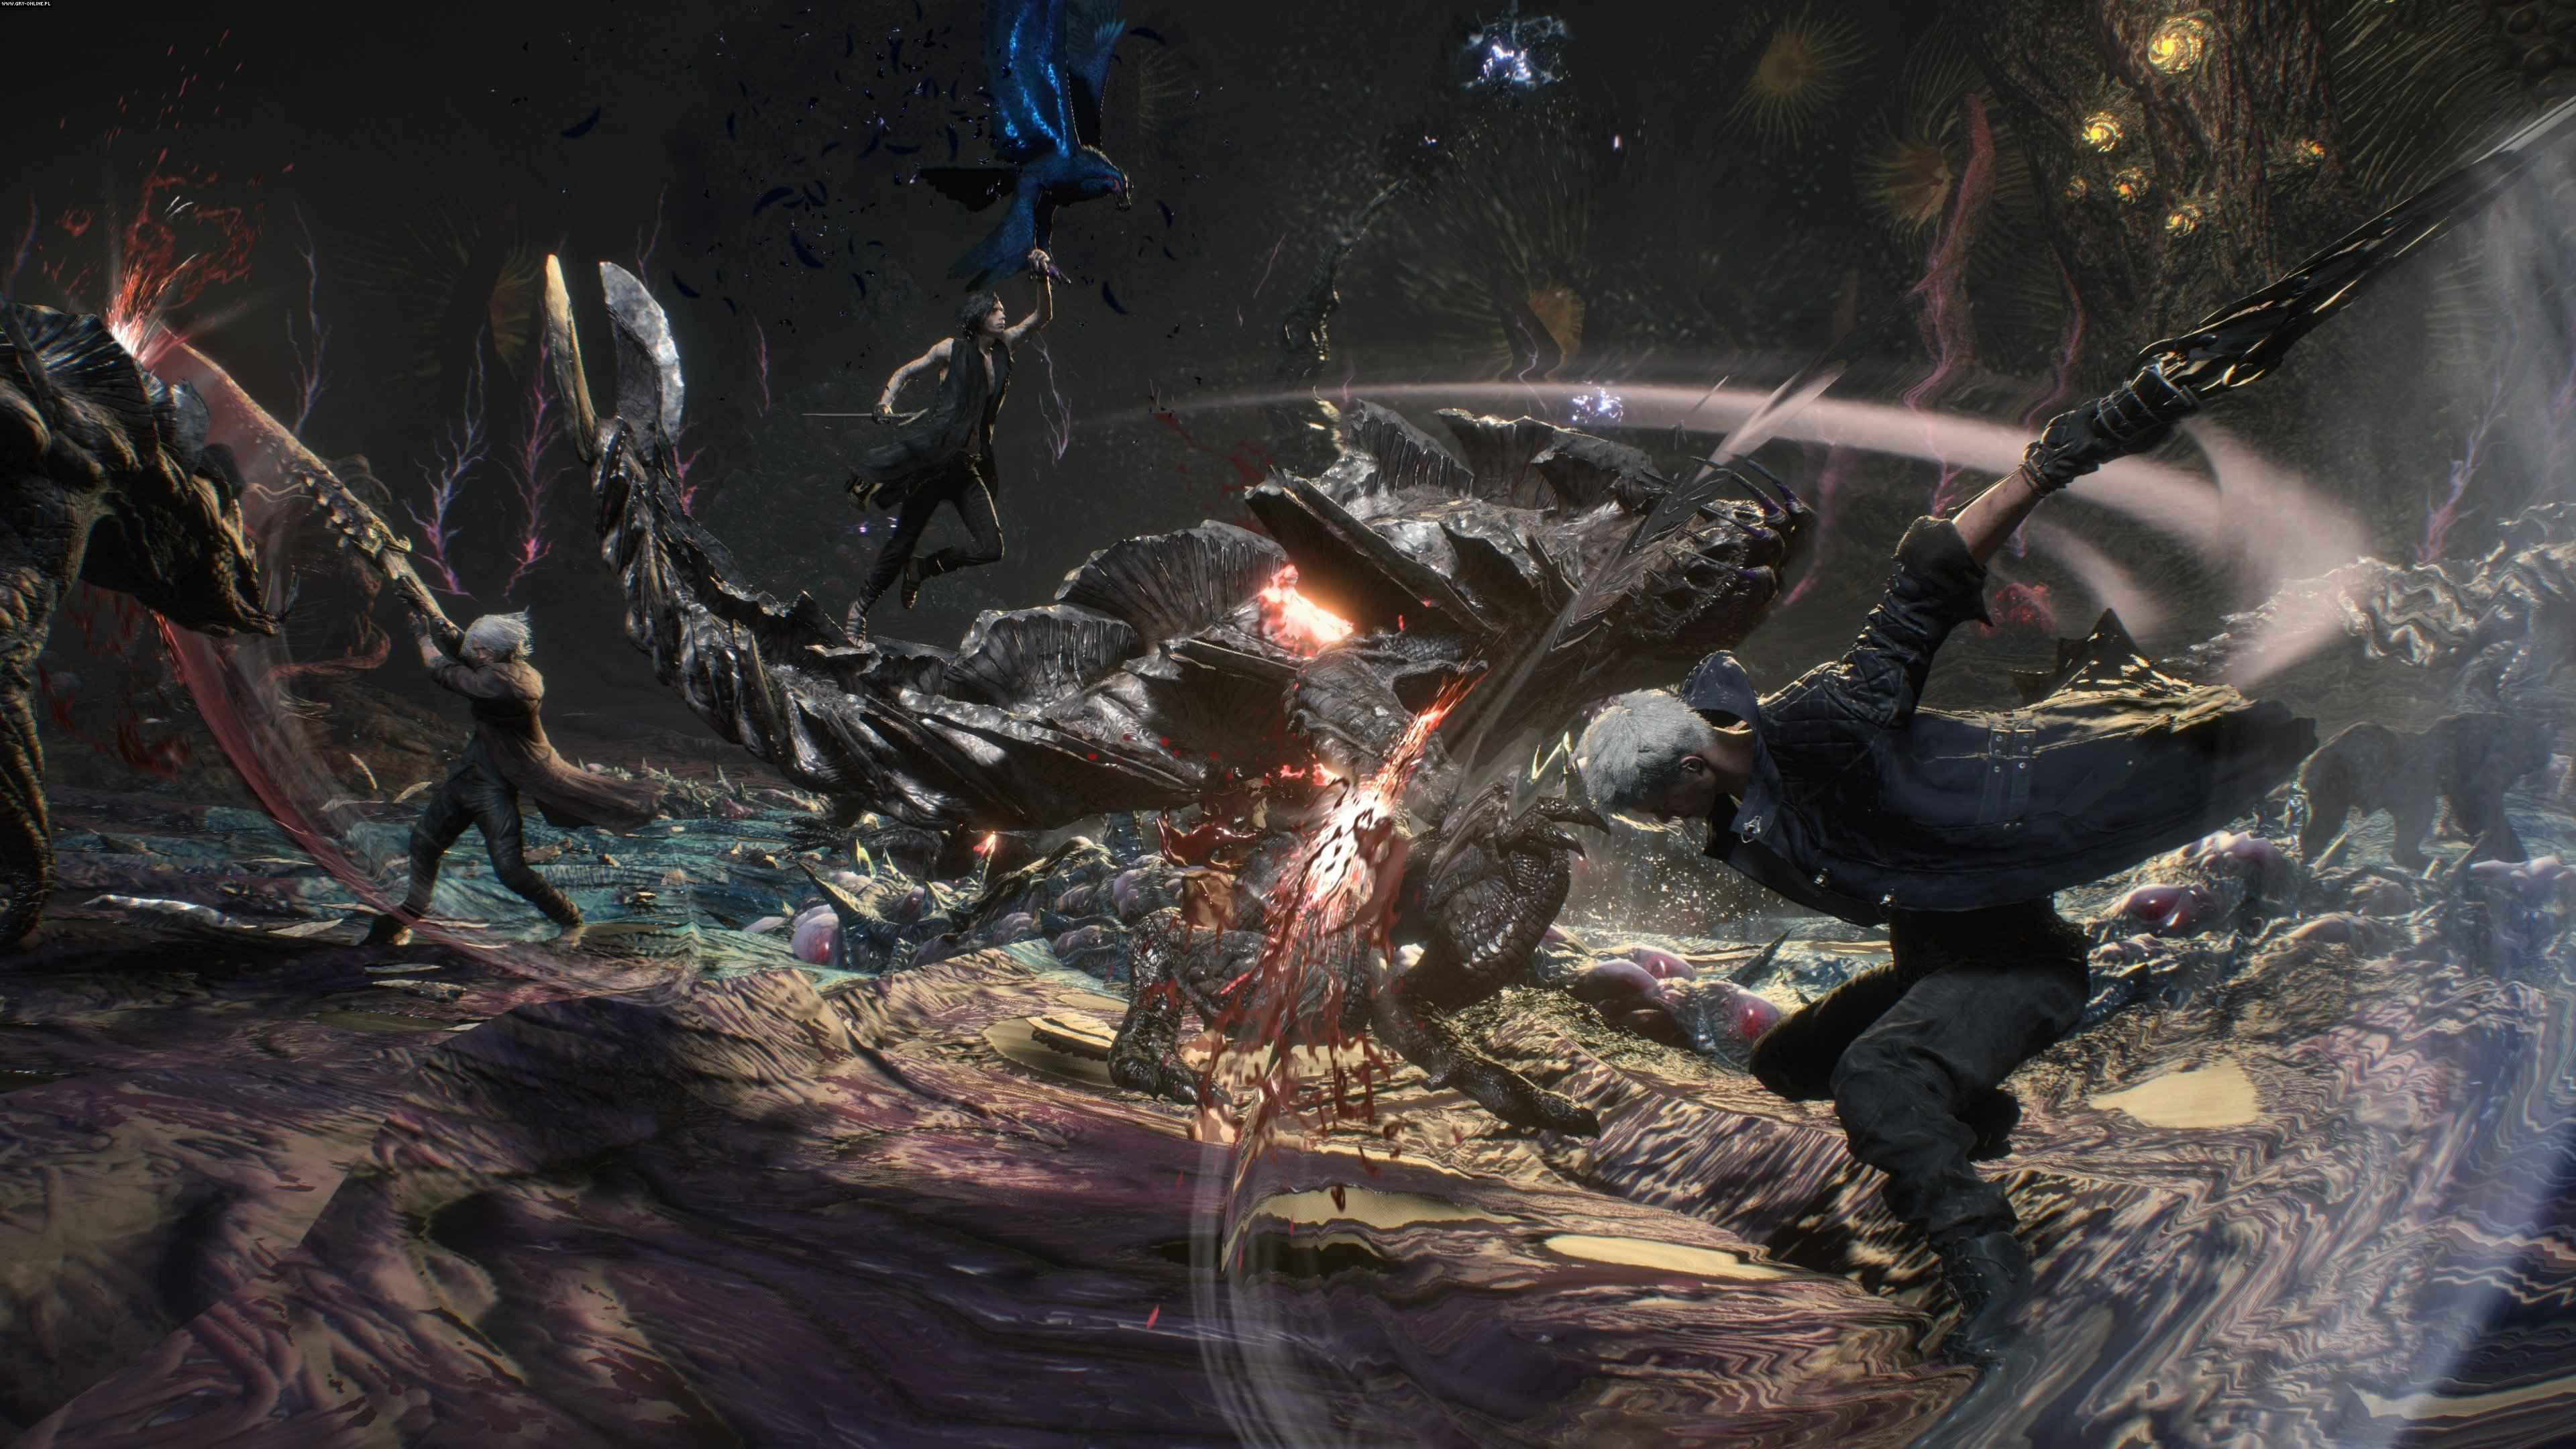 Devil May Cry 5 PC, PS4, XONE Games Image 18/81, Capcom